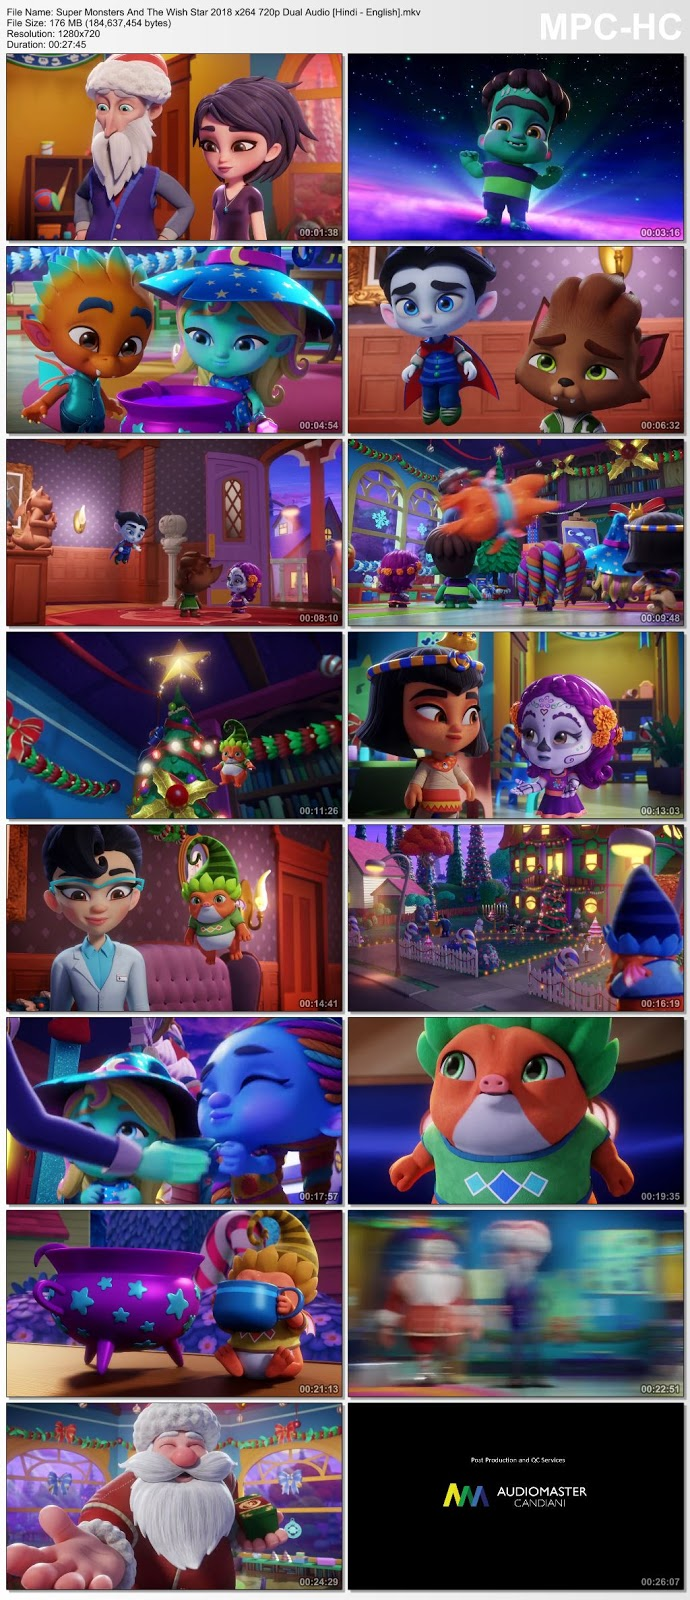 Super Monsters And The Wish Star (2018) Short Movie 720p Dual Audio [Hindi – English] – 170MB Desirehub